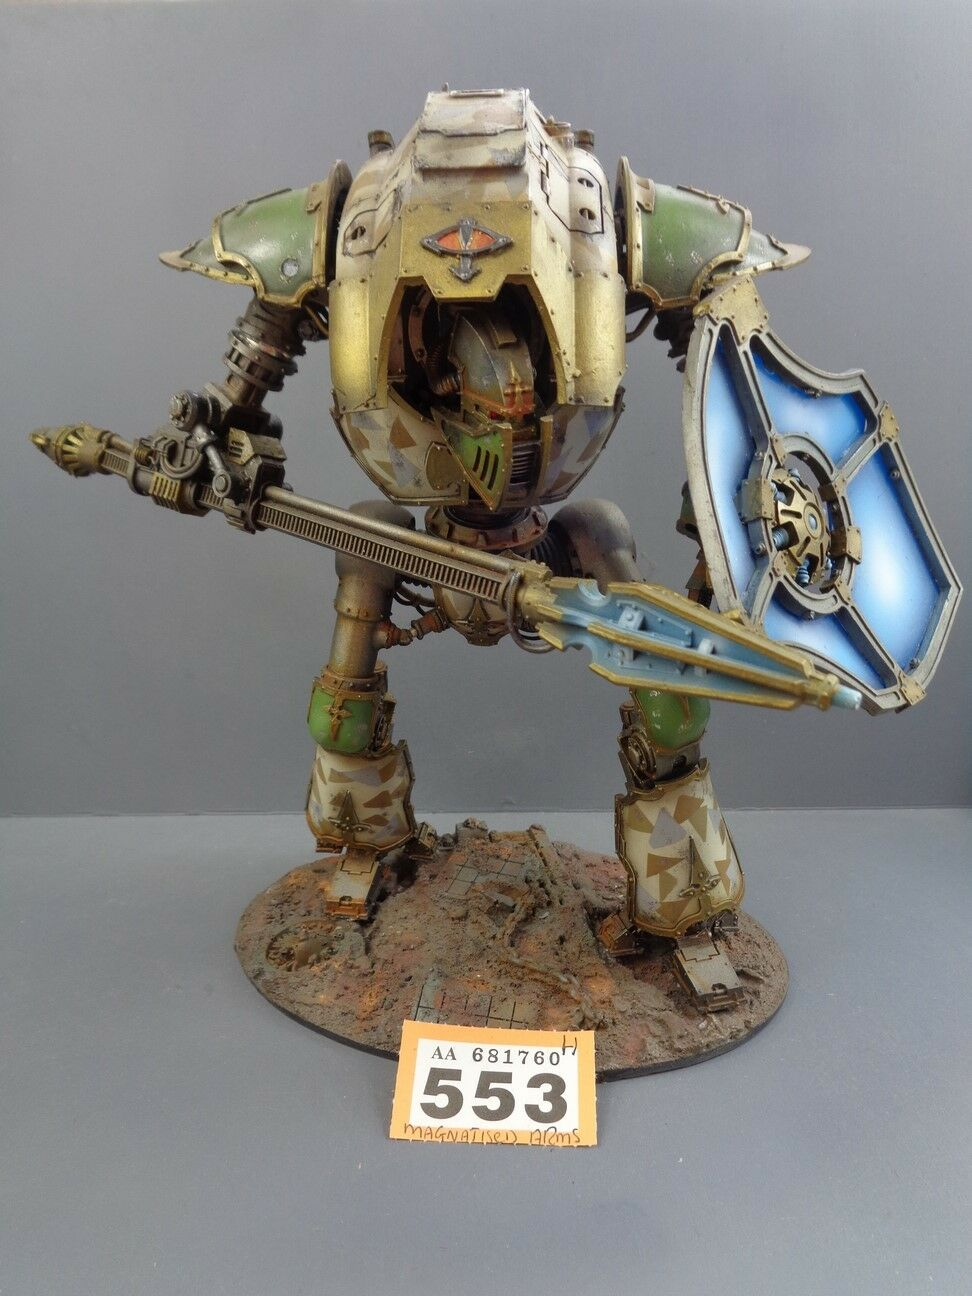 Warhammer Space Marines Imperial Knight Forge World cerastus Lancer 553